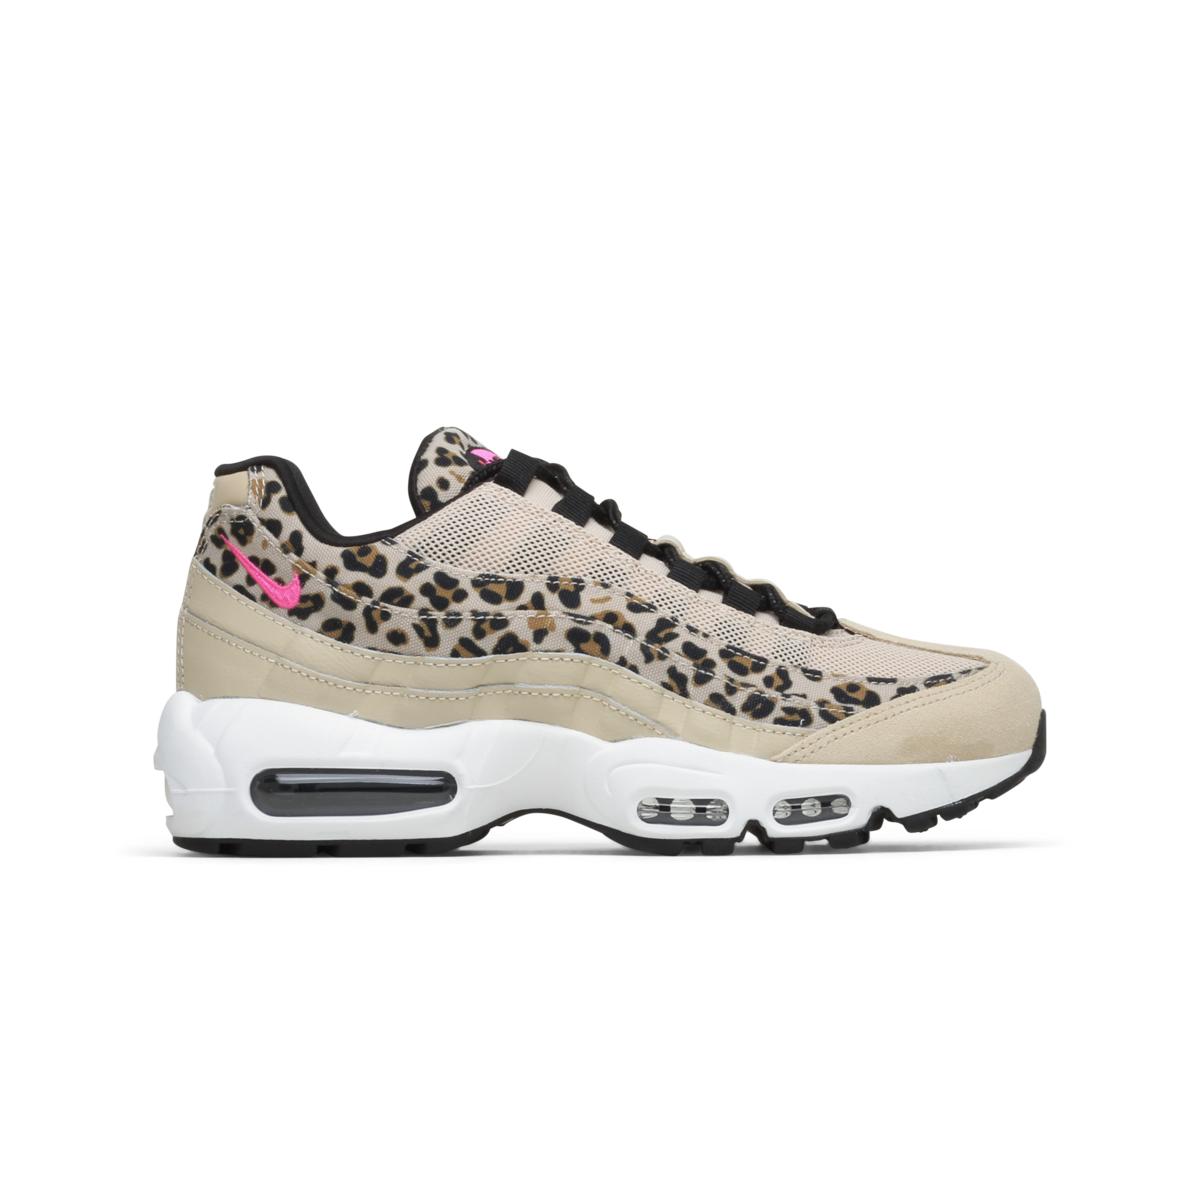 huge selection of 8480d 61afd Air Max 95 Premium - Wmns